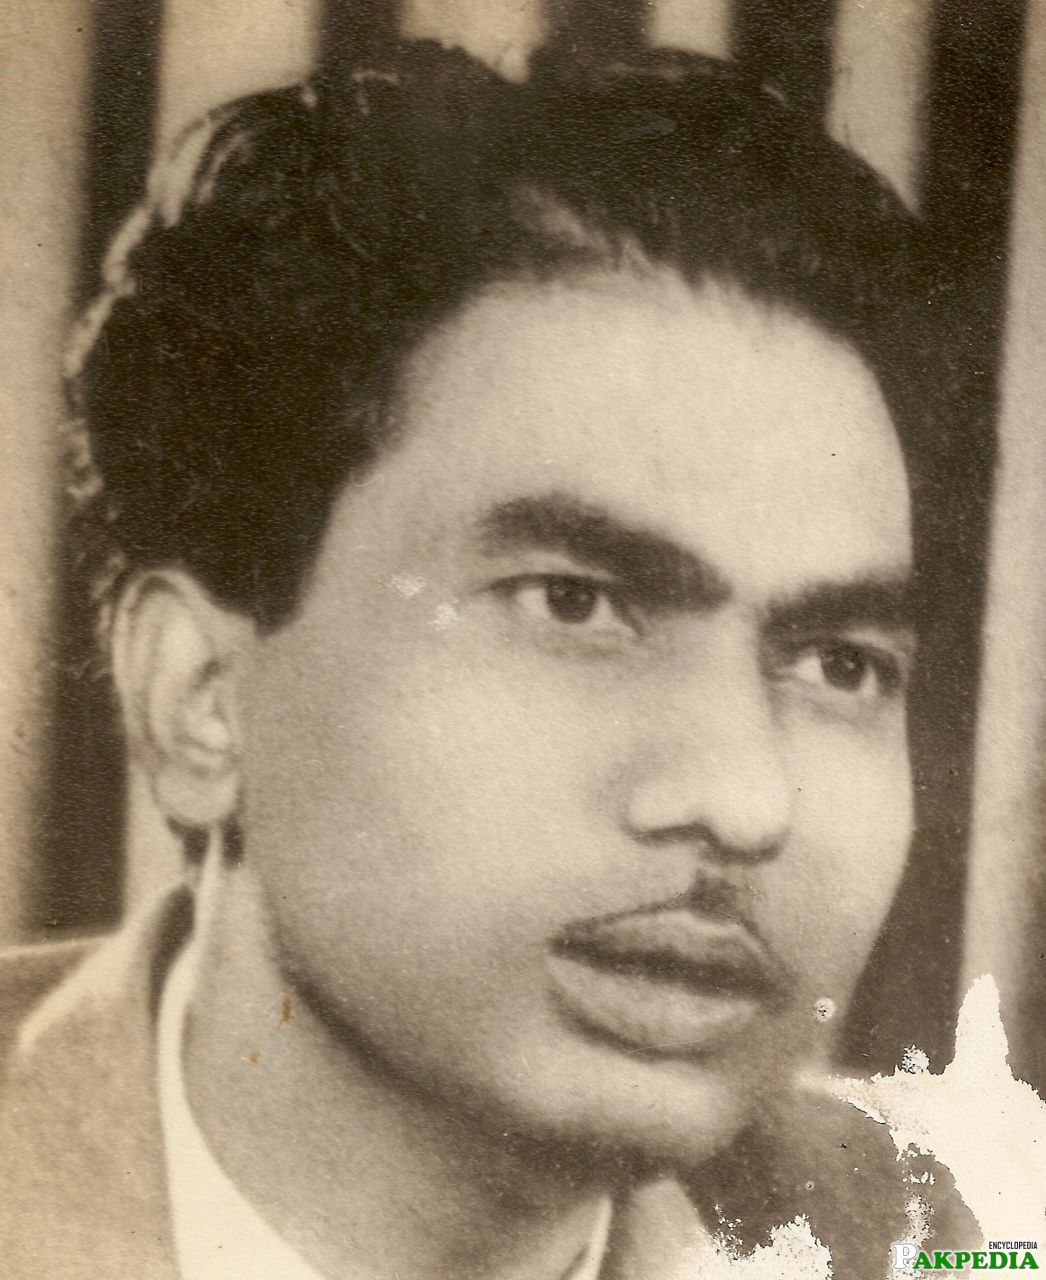 Ghulam Haider in Young age